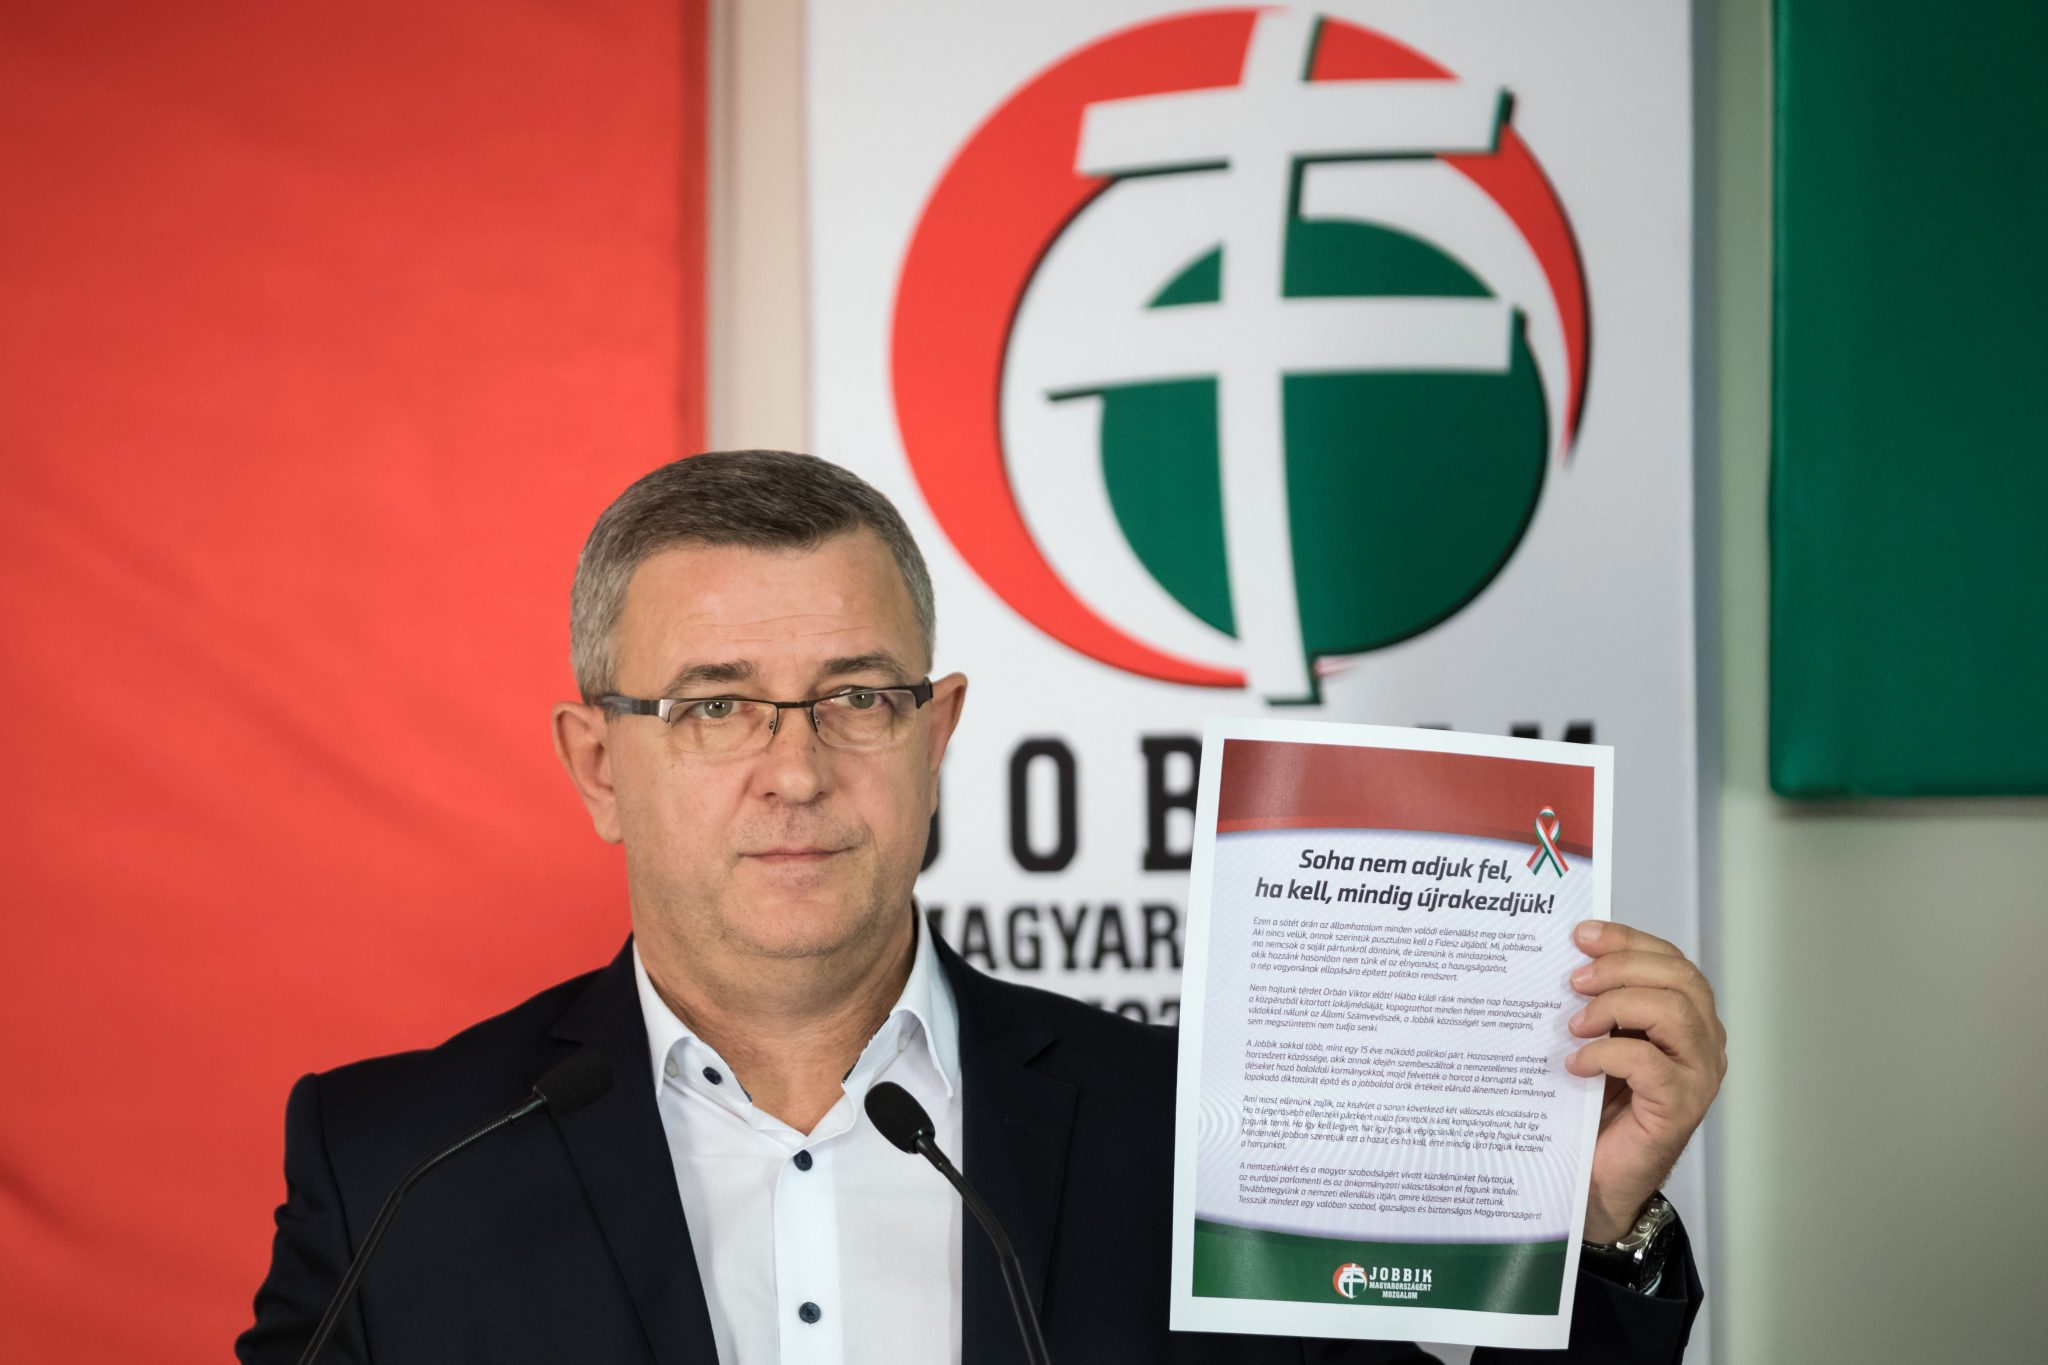 Jobbik: Hungary Has Become 'Migrant Destination' post's picture